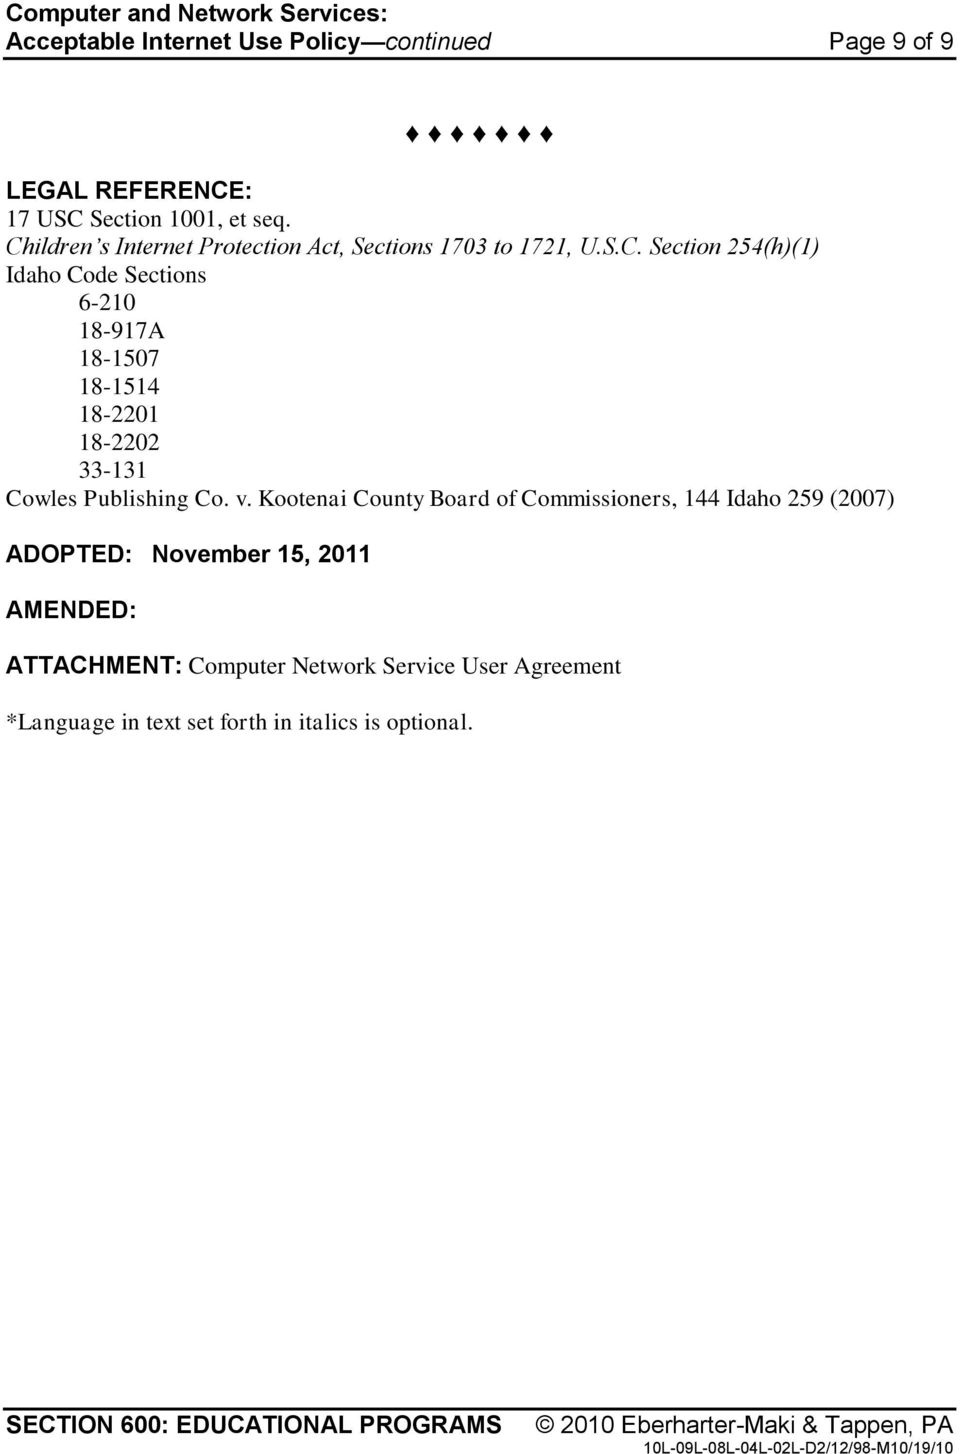 v. Kootenai County Board of Commissioners, 144 Idaho 259 (2007) ADOPTED: November 15, 2011 AMENDED: ATTACHMENT: Computer